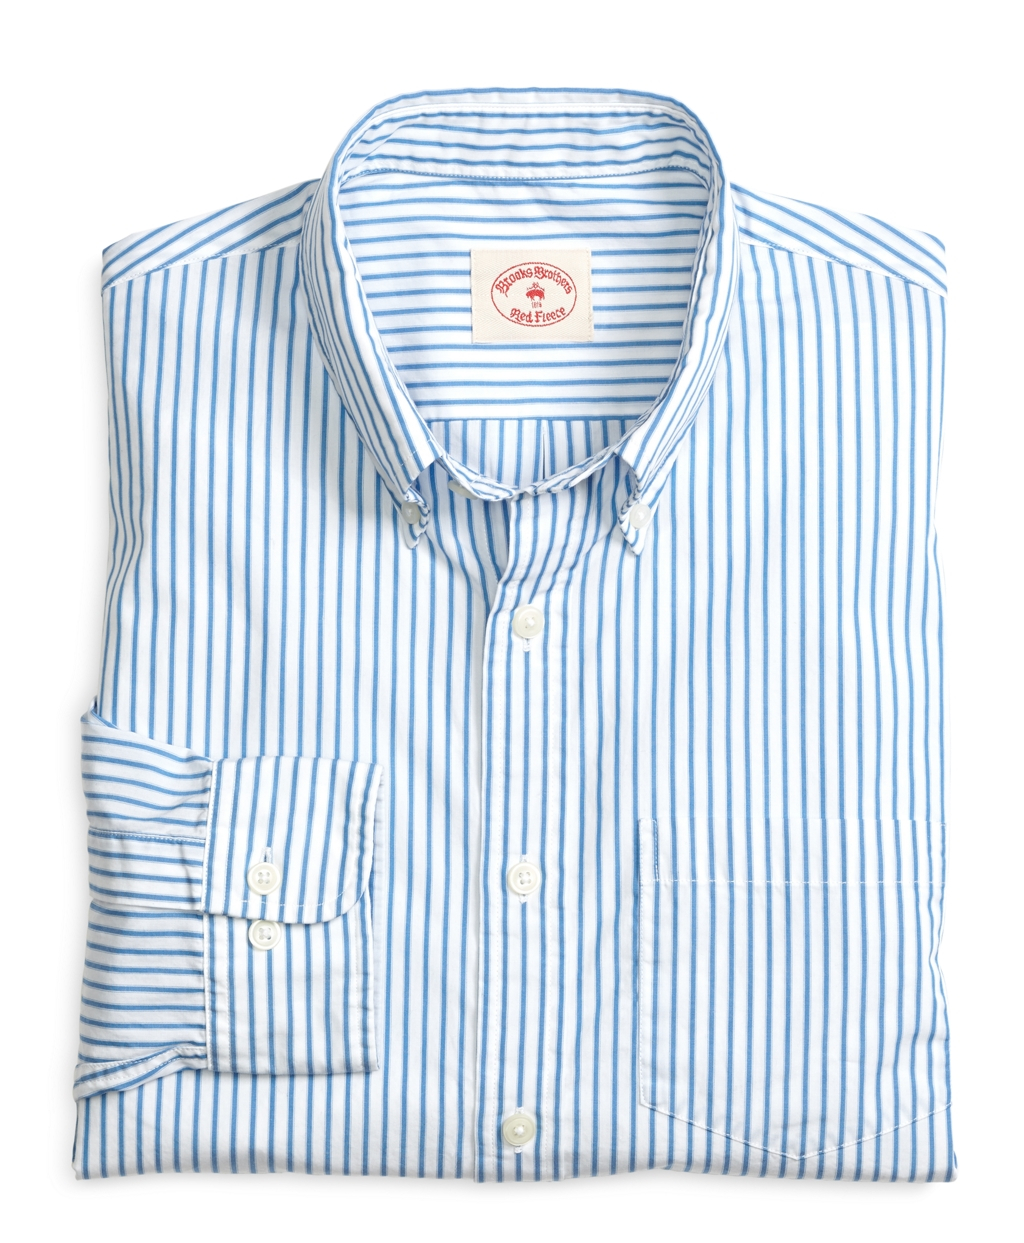 Lyst brooks brothers blue ticking stripe sport shirt in for Brooks brothers sports shirts